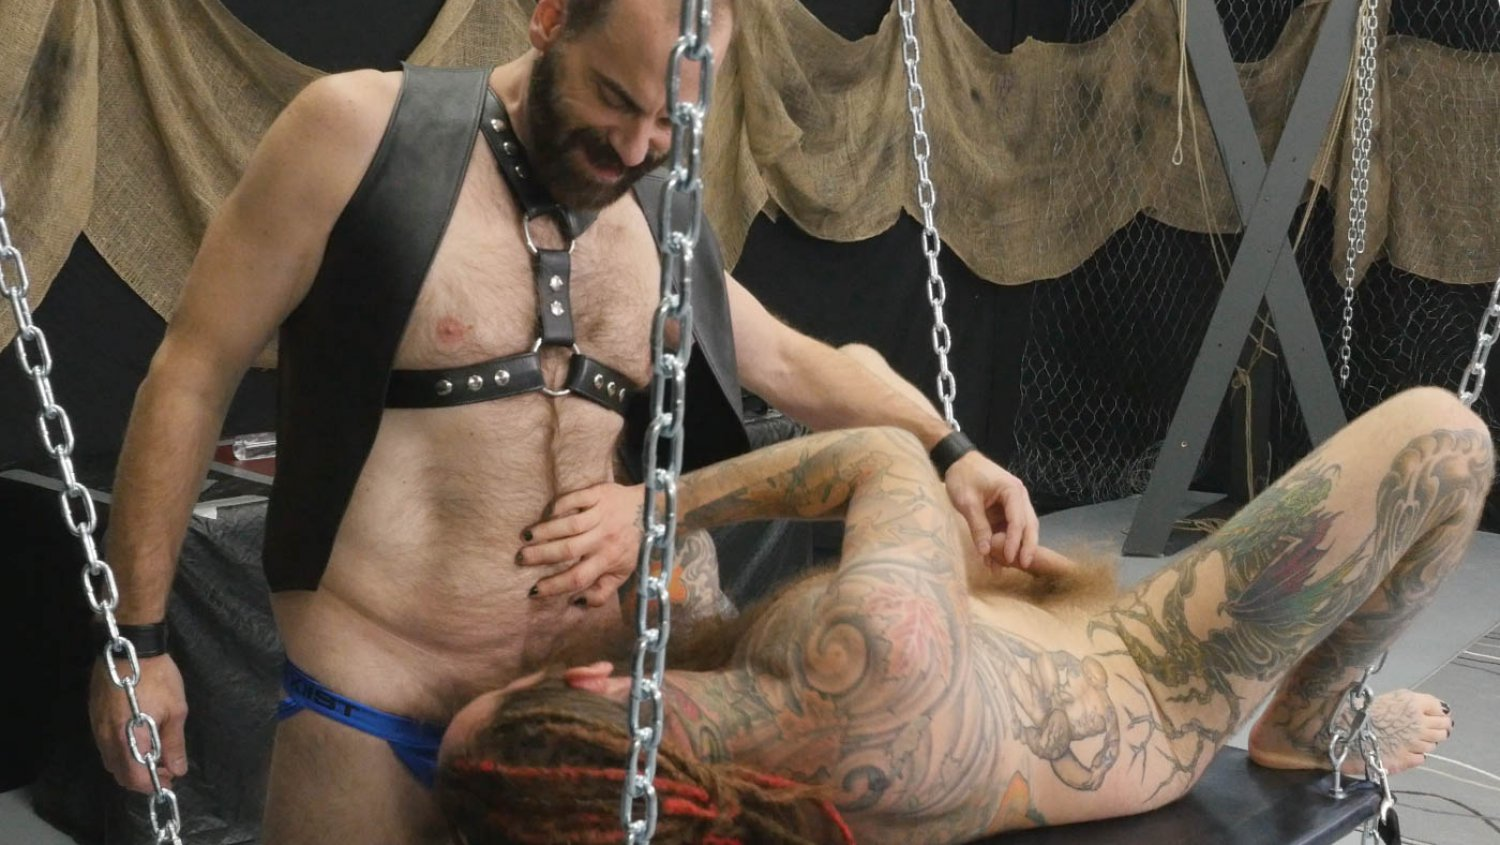 Hairy and Raw Gay Bear Sex Ass Pounding Arsenault Part 1